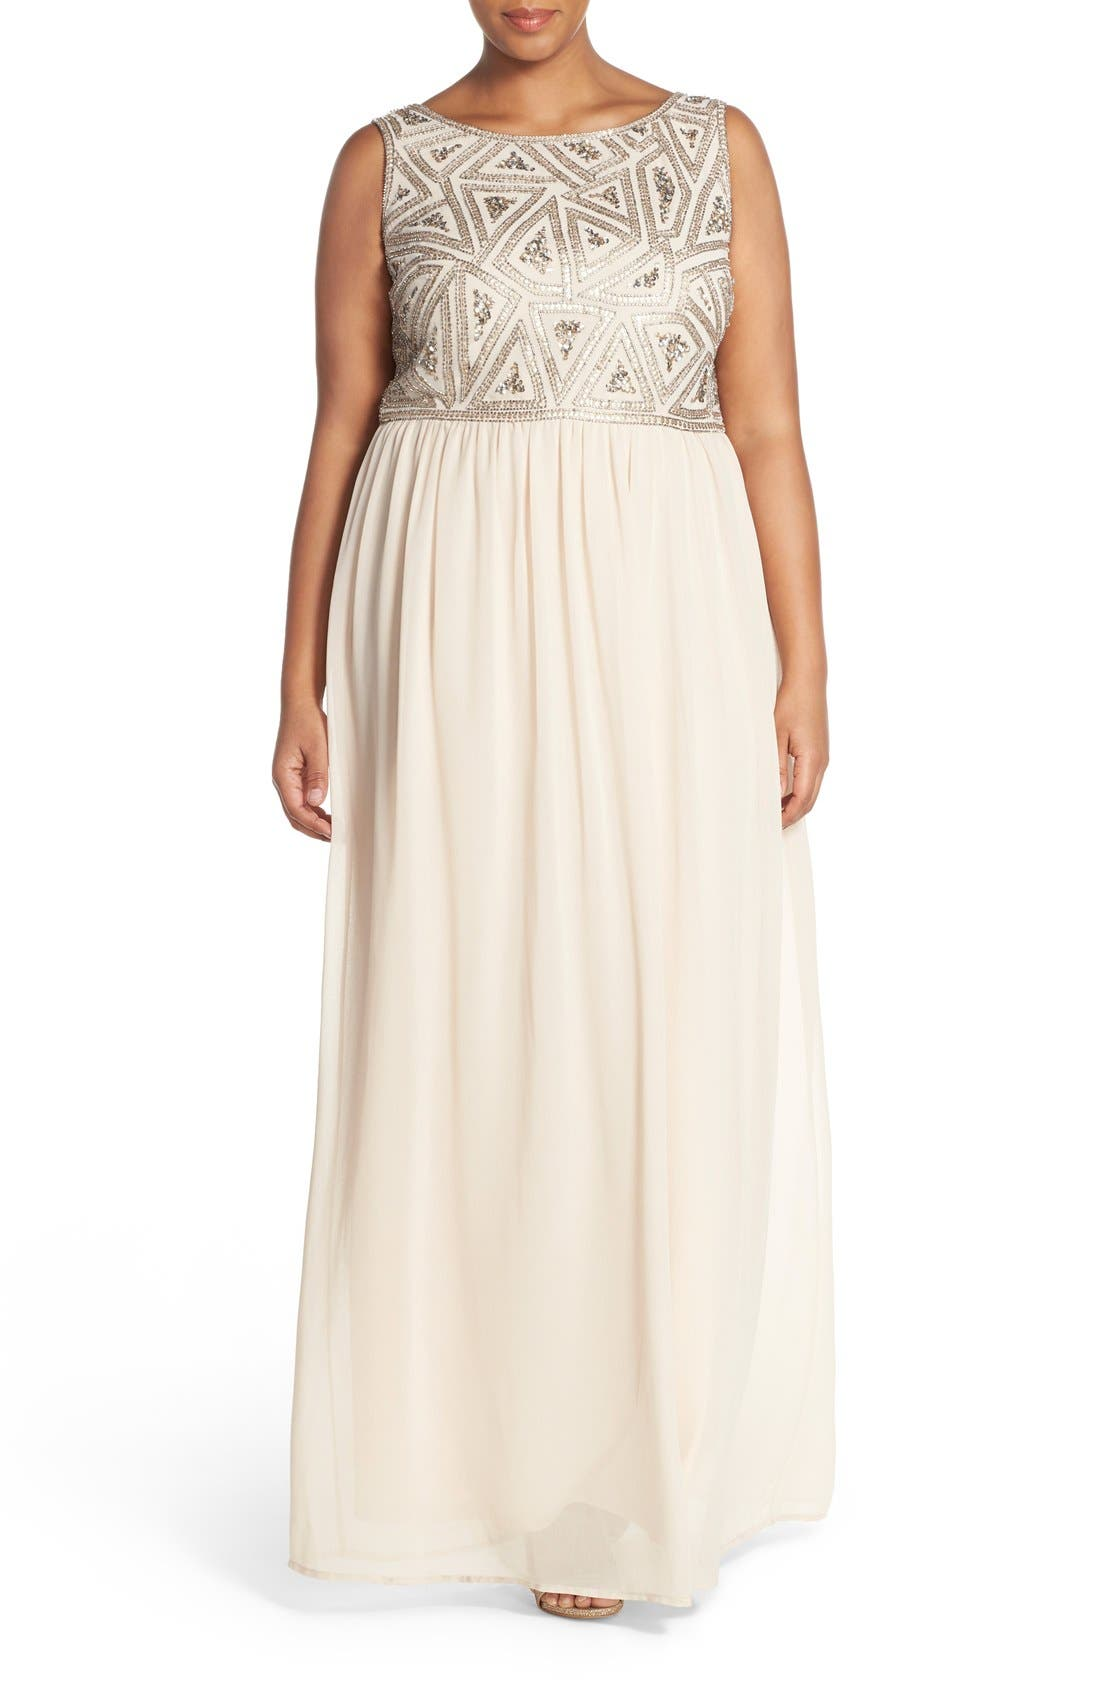 Main Image - Adrianna Papell Beaded Bodice A-Line Gown (Plus Size)